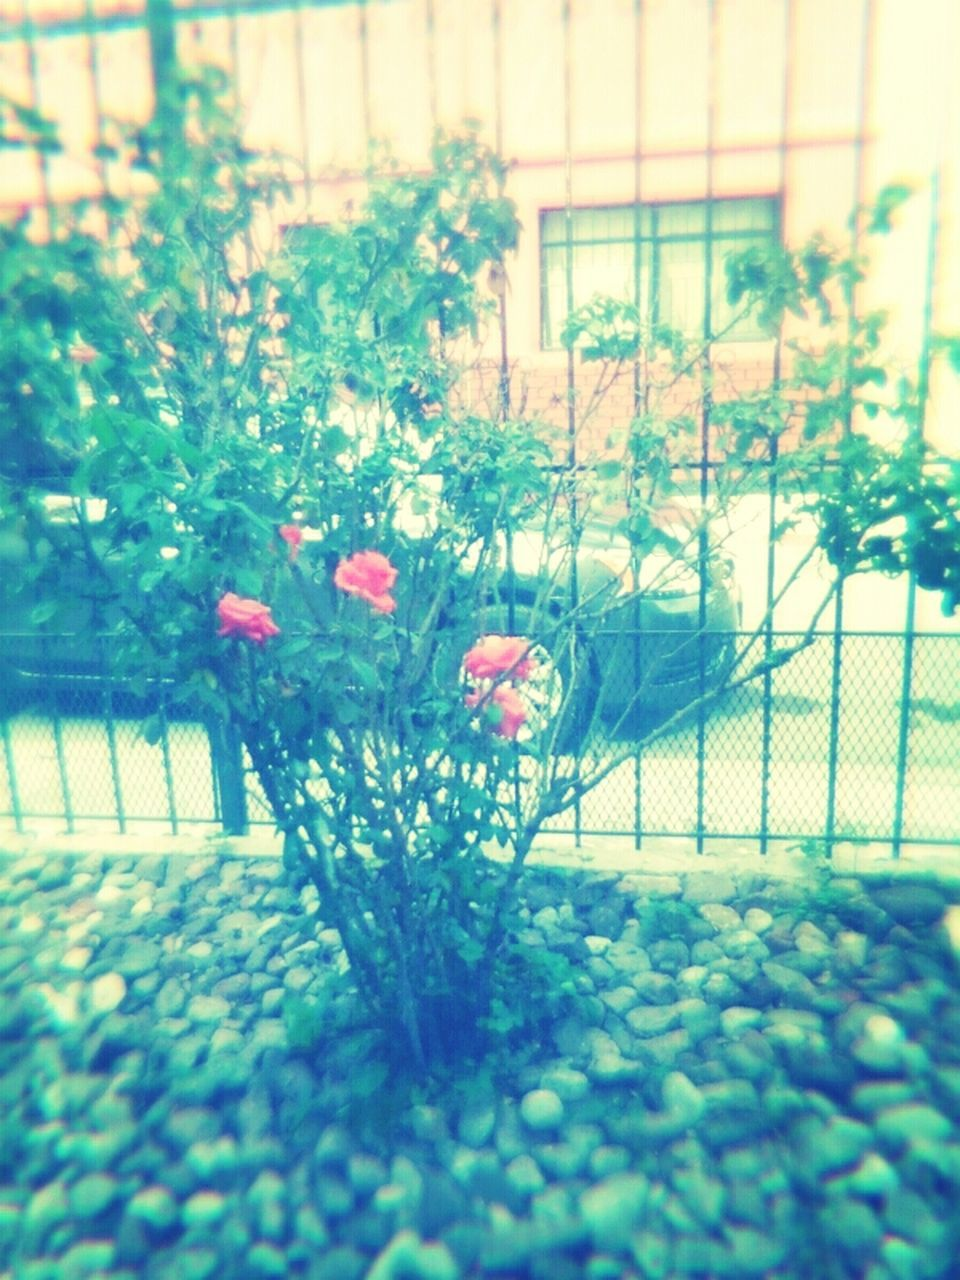 growth, flower, plant, nature, no people, outdoors, day